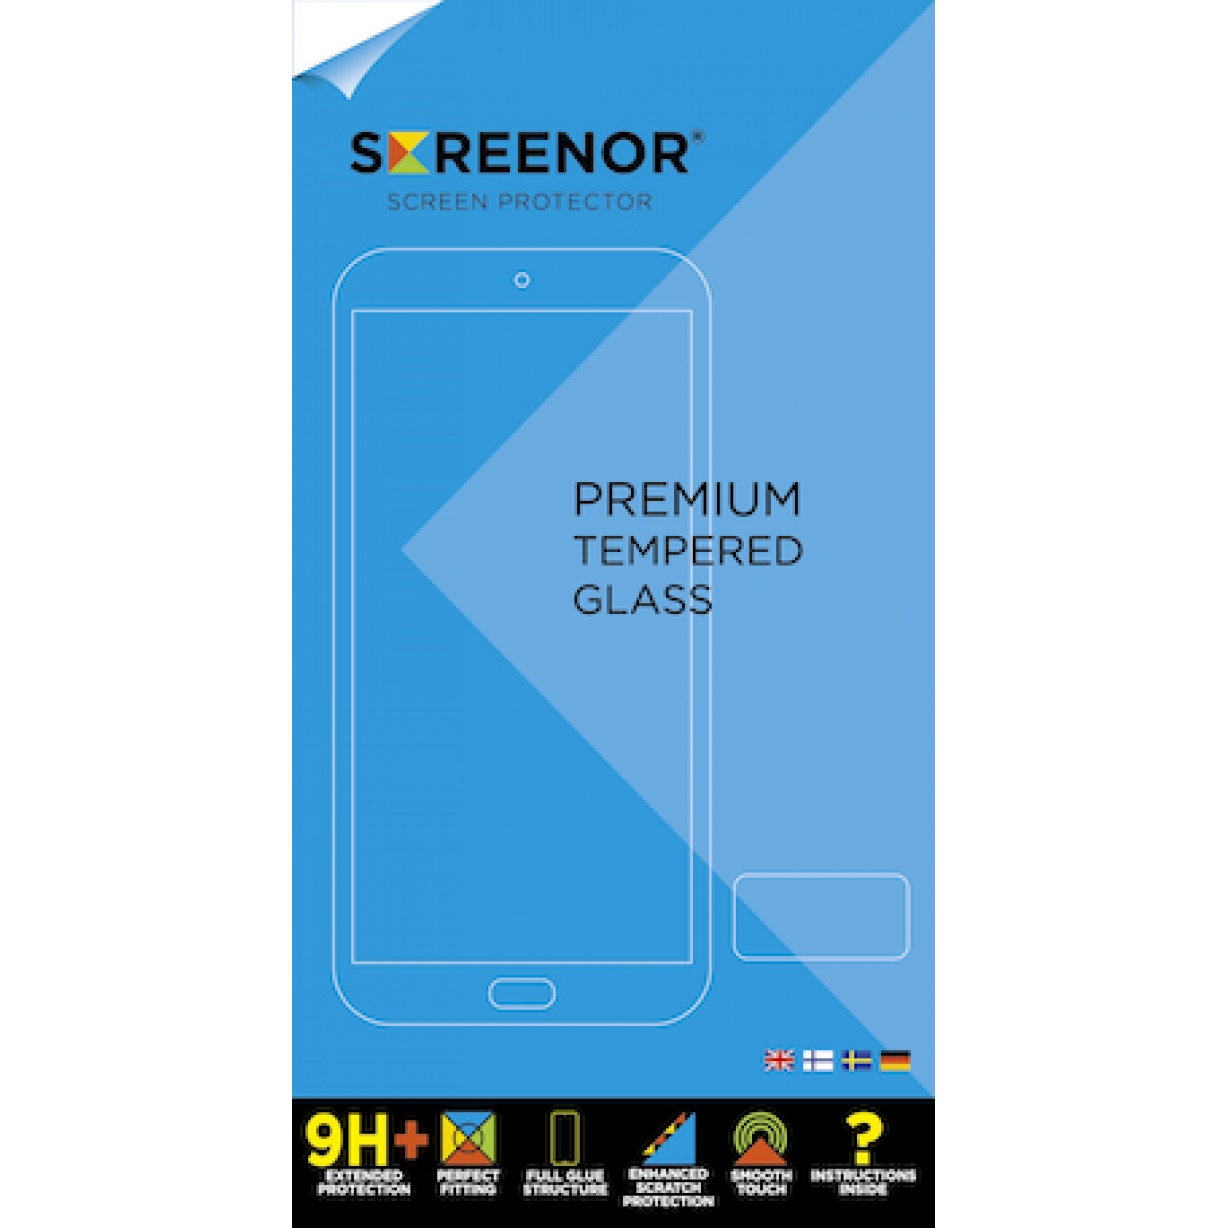 Apsauginis stiklas Screenor Premium Tempered Glass Nokia 3